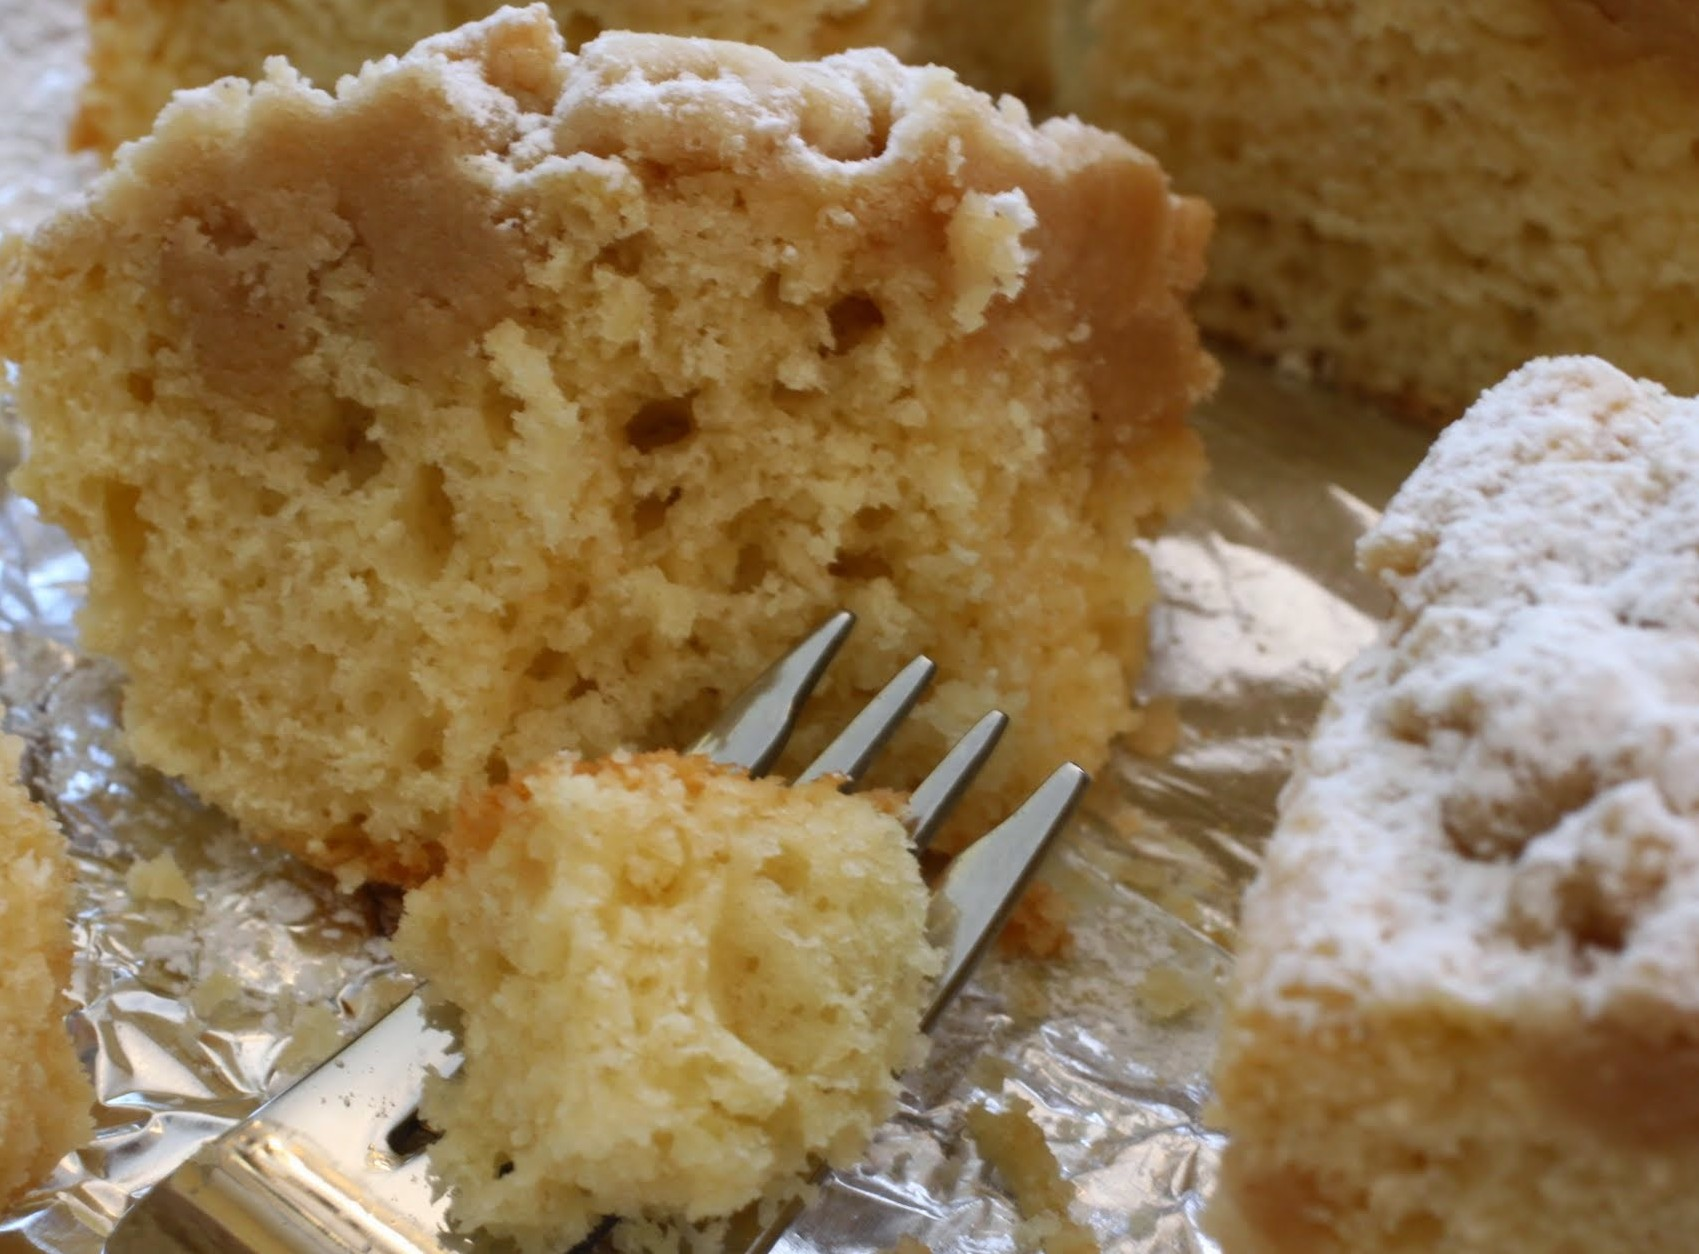 Lighter Crumb Cake